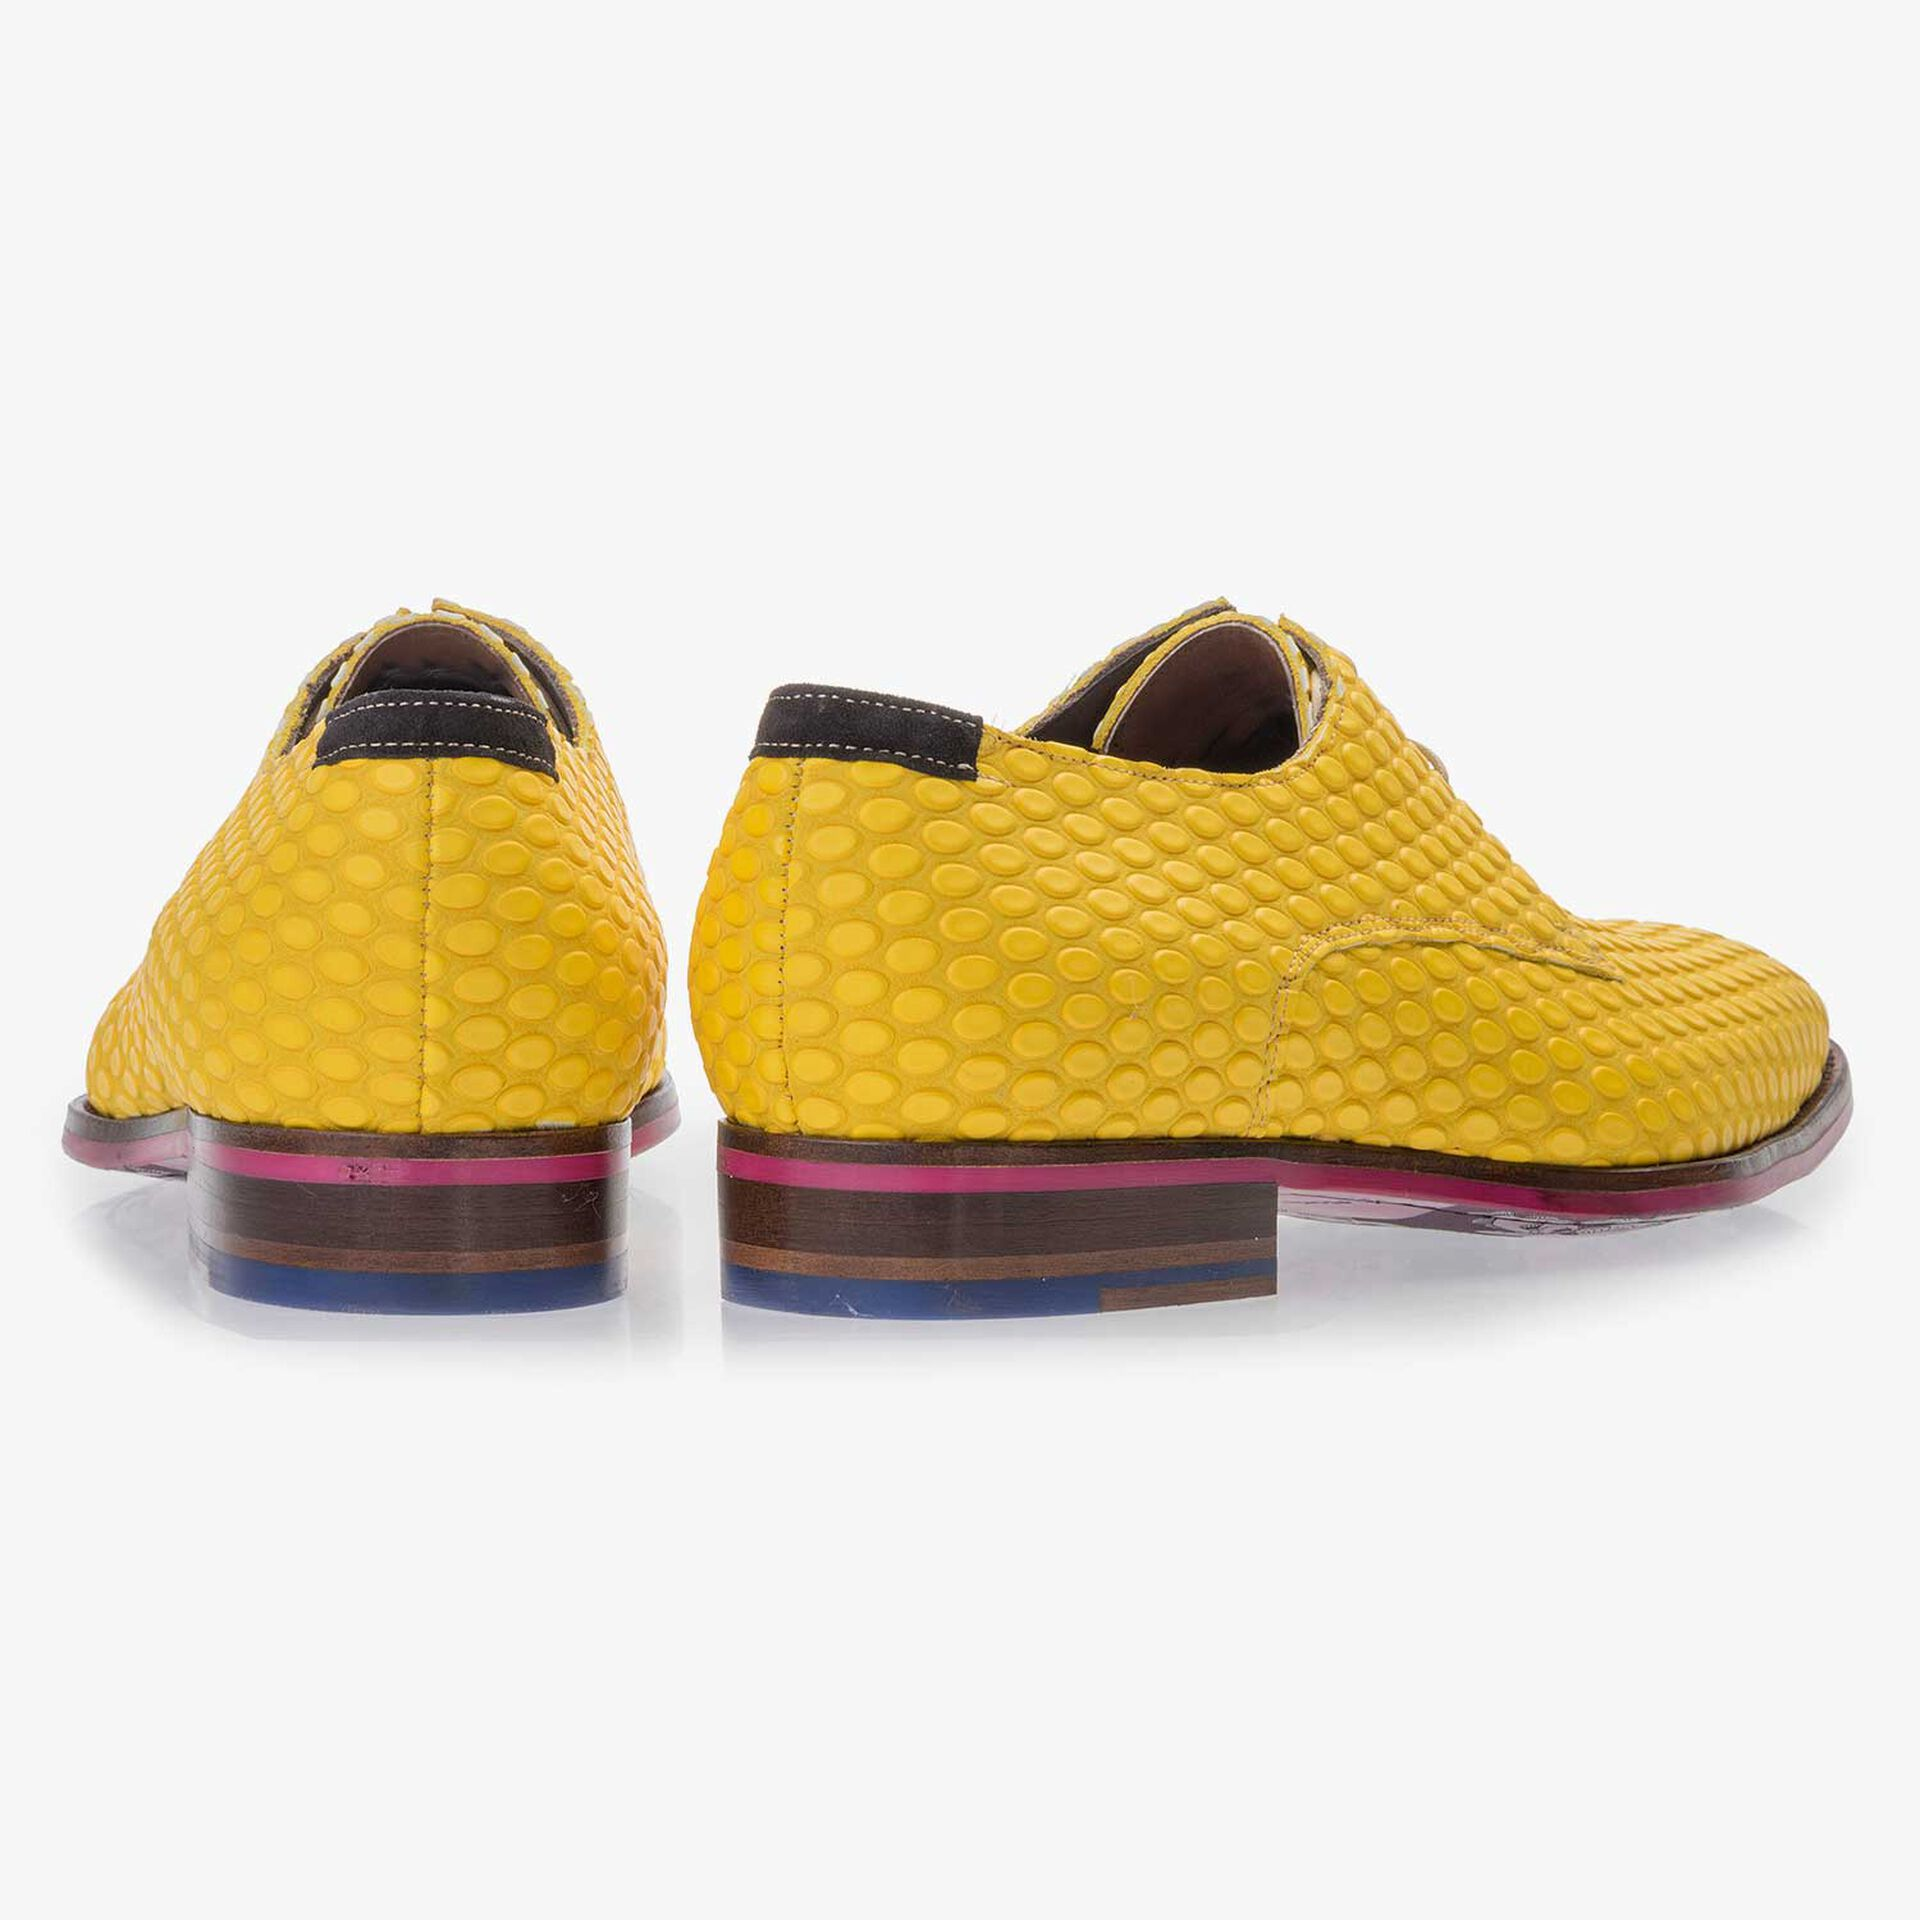 Premium yellow leather lace shoe